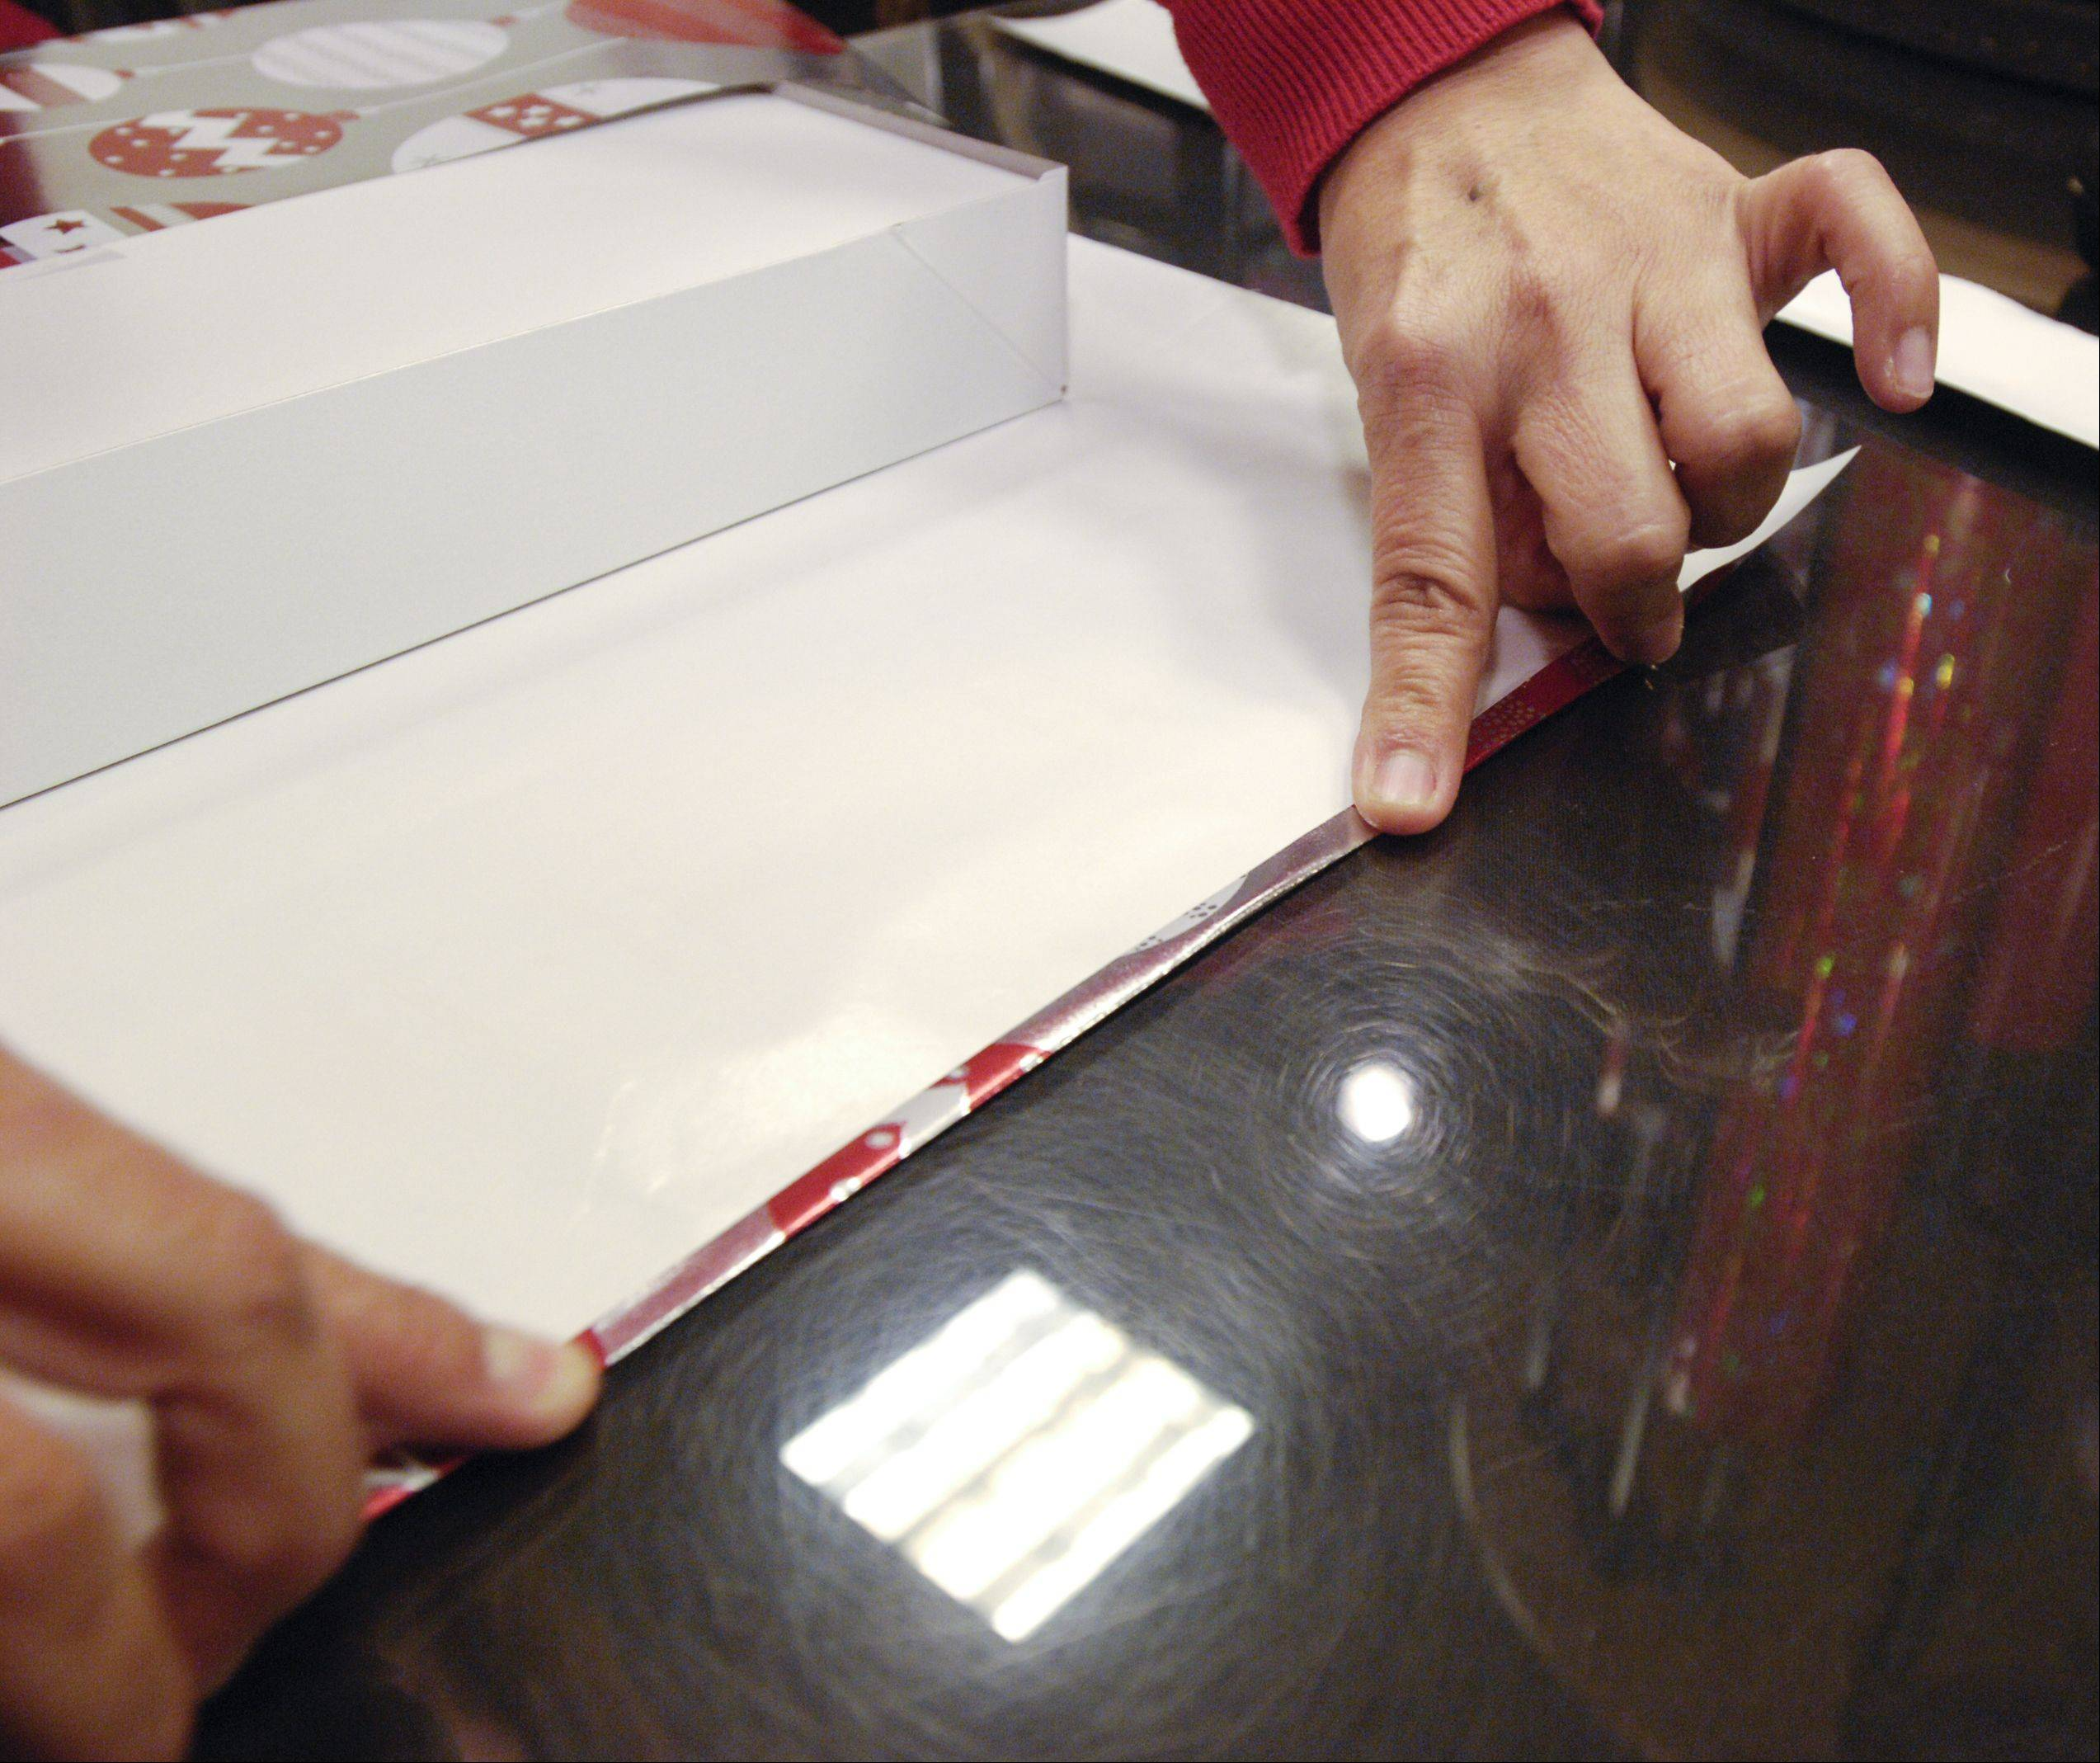 Step 4: Fold the edge of the wrapping paper for crisp lines.